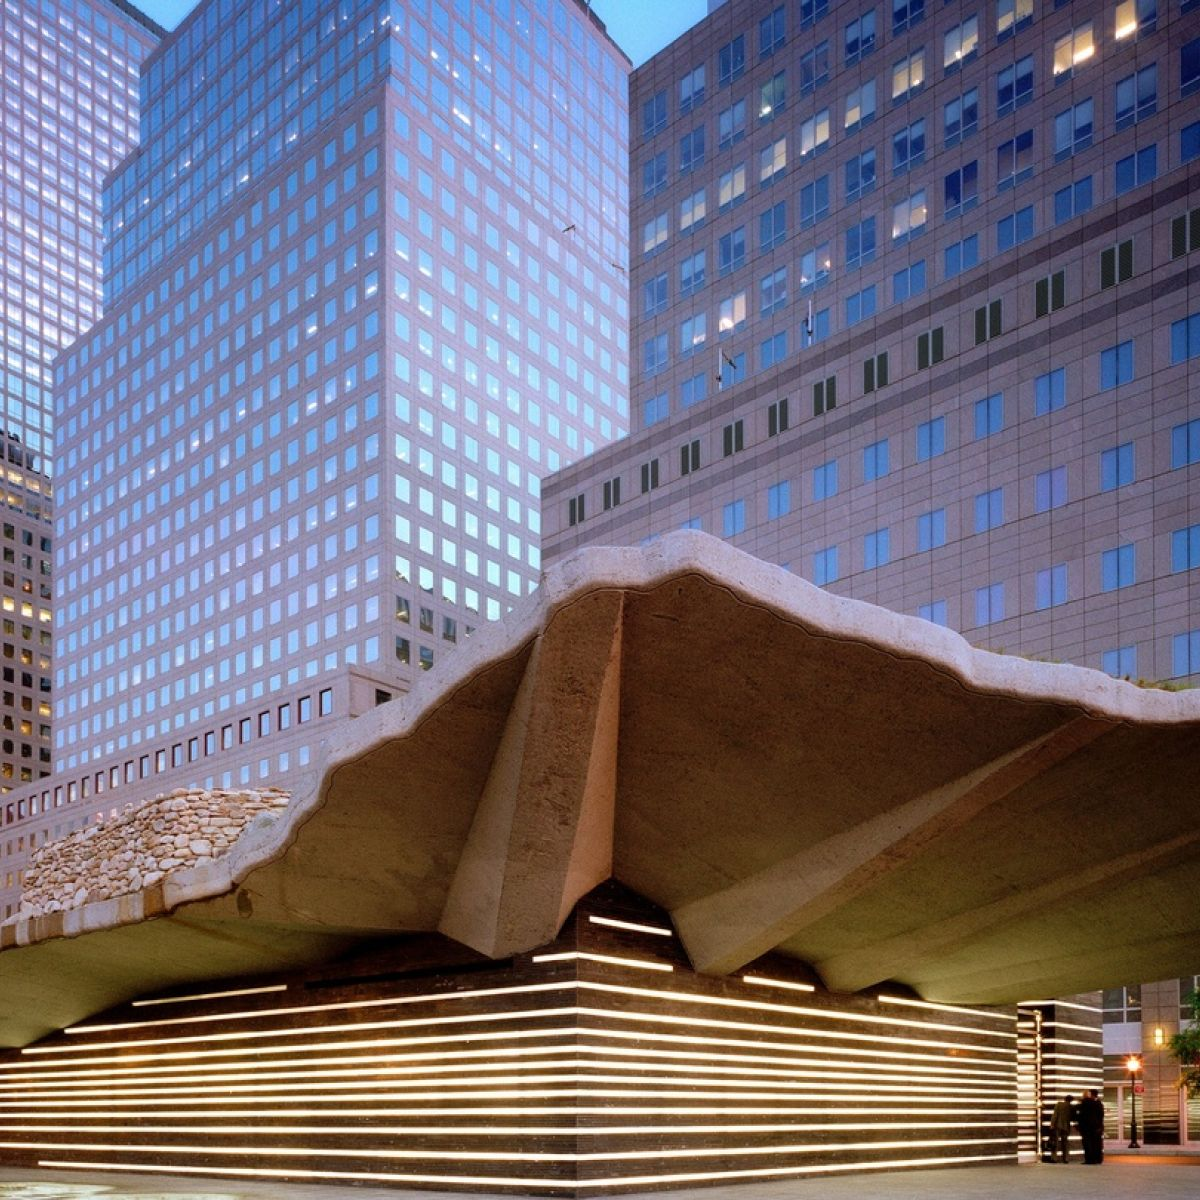 Irish Hunger Memorial in NYC reopens after €4.5m renovation